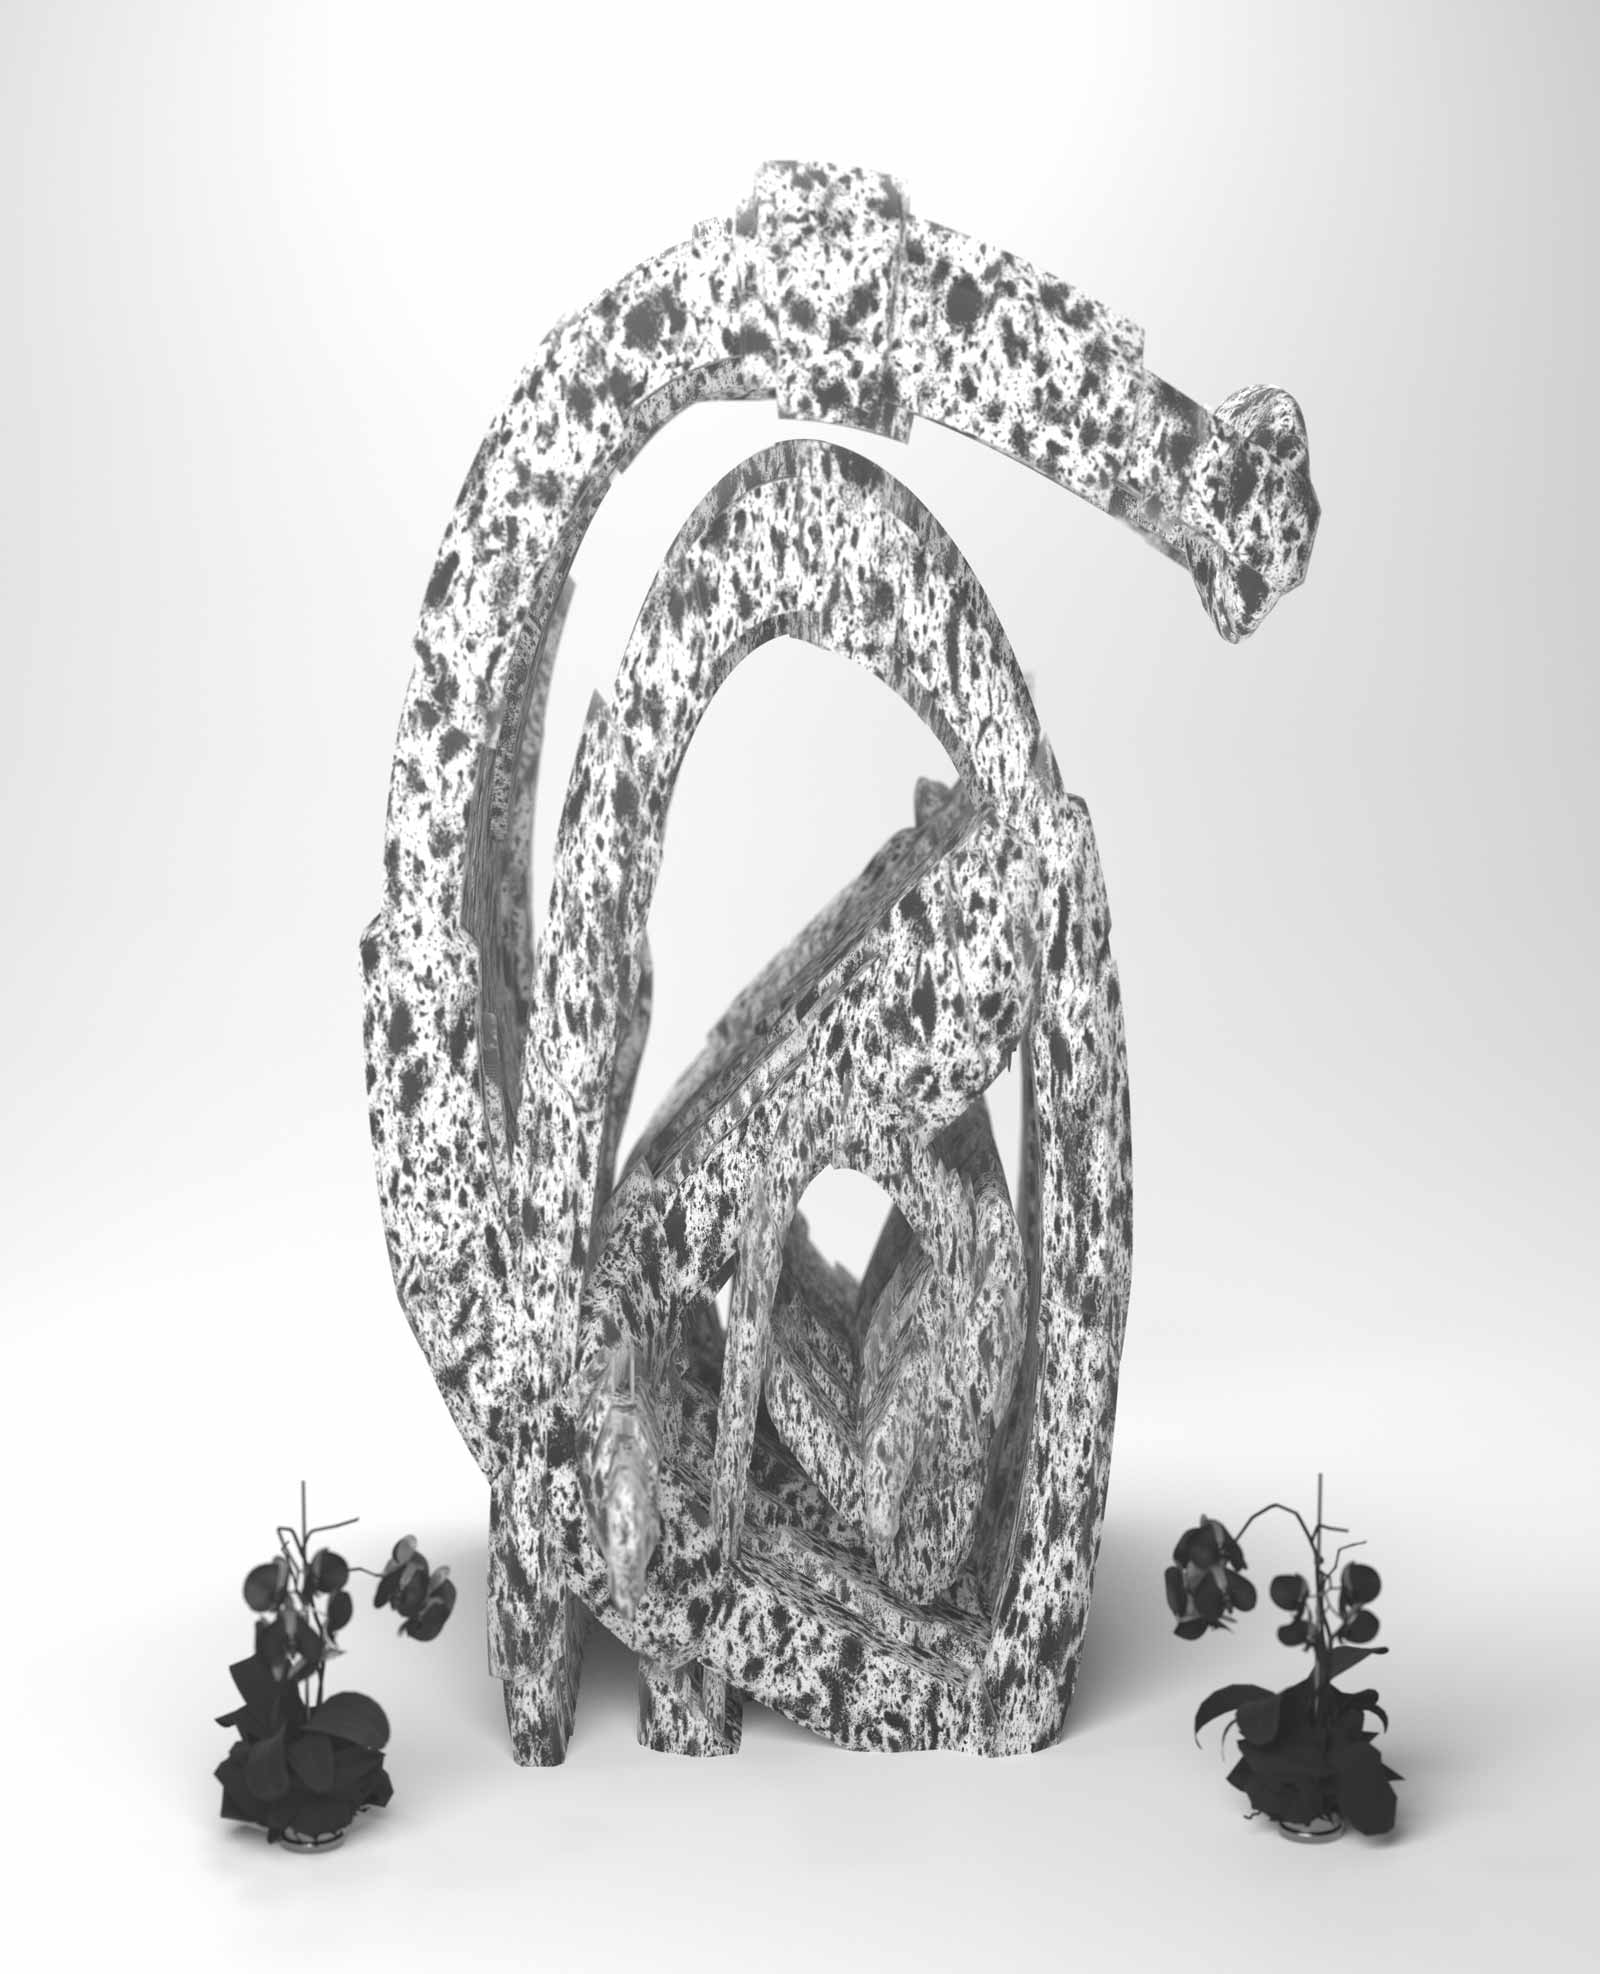 Vertically oriented sculpture. Oblong shape twisted into a swirling shape. Surface is white with black drip or stains over the entire surface. Several small black sculptures reminiscent of flowering plants sit around the base of the main sculpture.